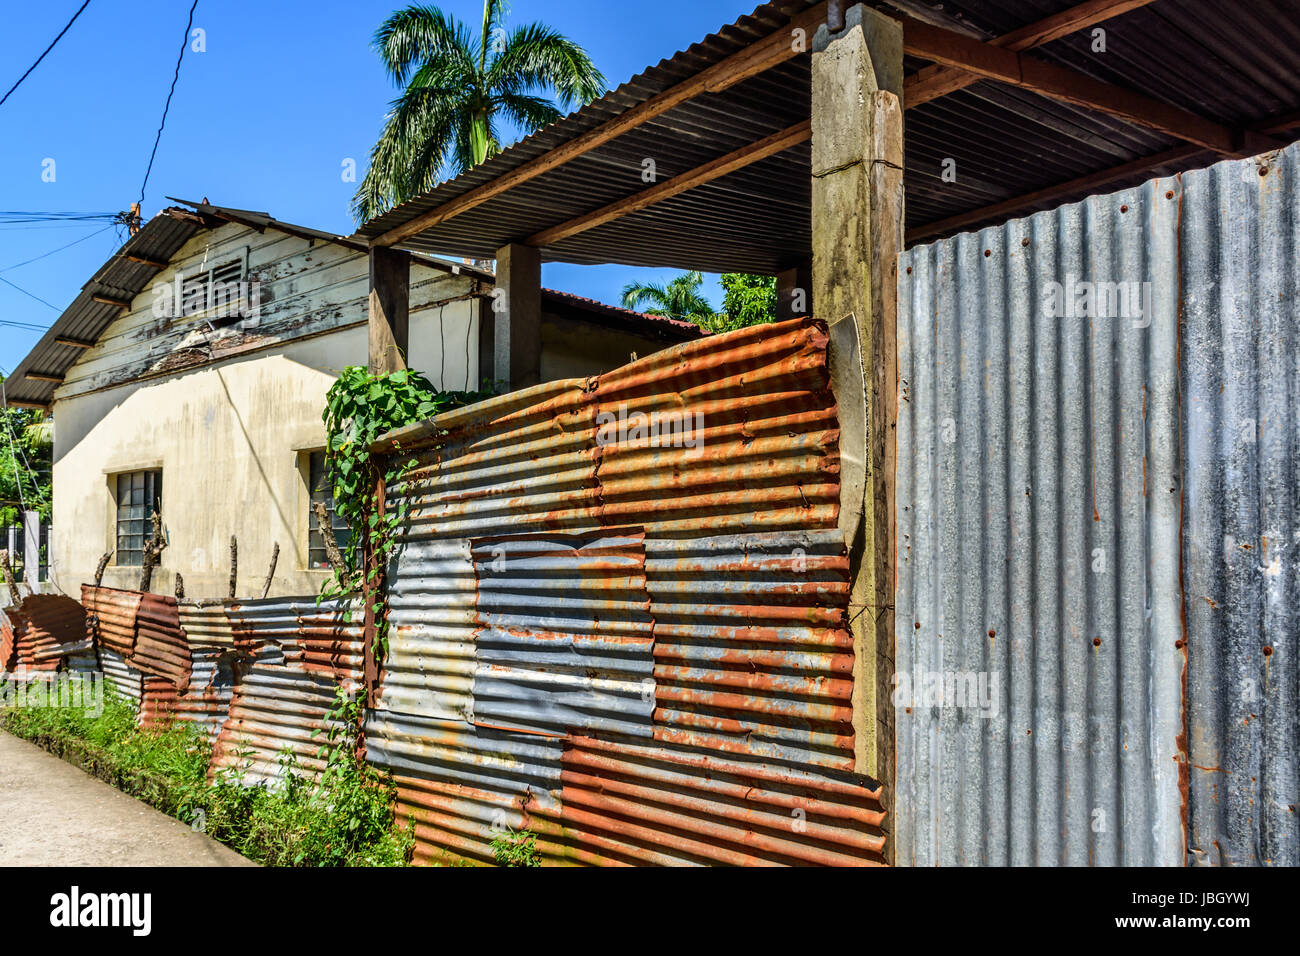 Livingston, Guatemala - August 31, 2016: Typical simple house with corrugated iron outbuilding in Caribbean town - Stock Image